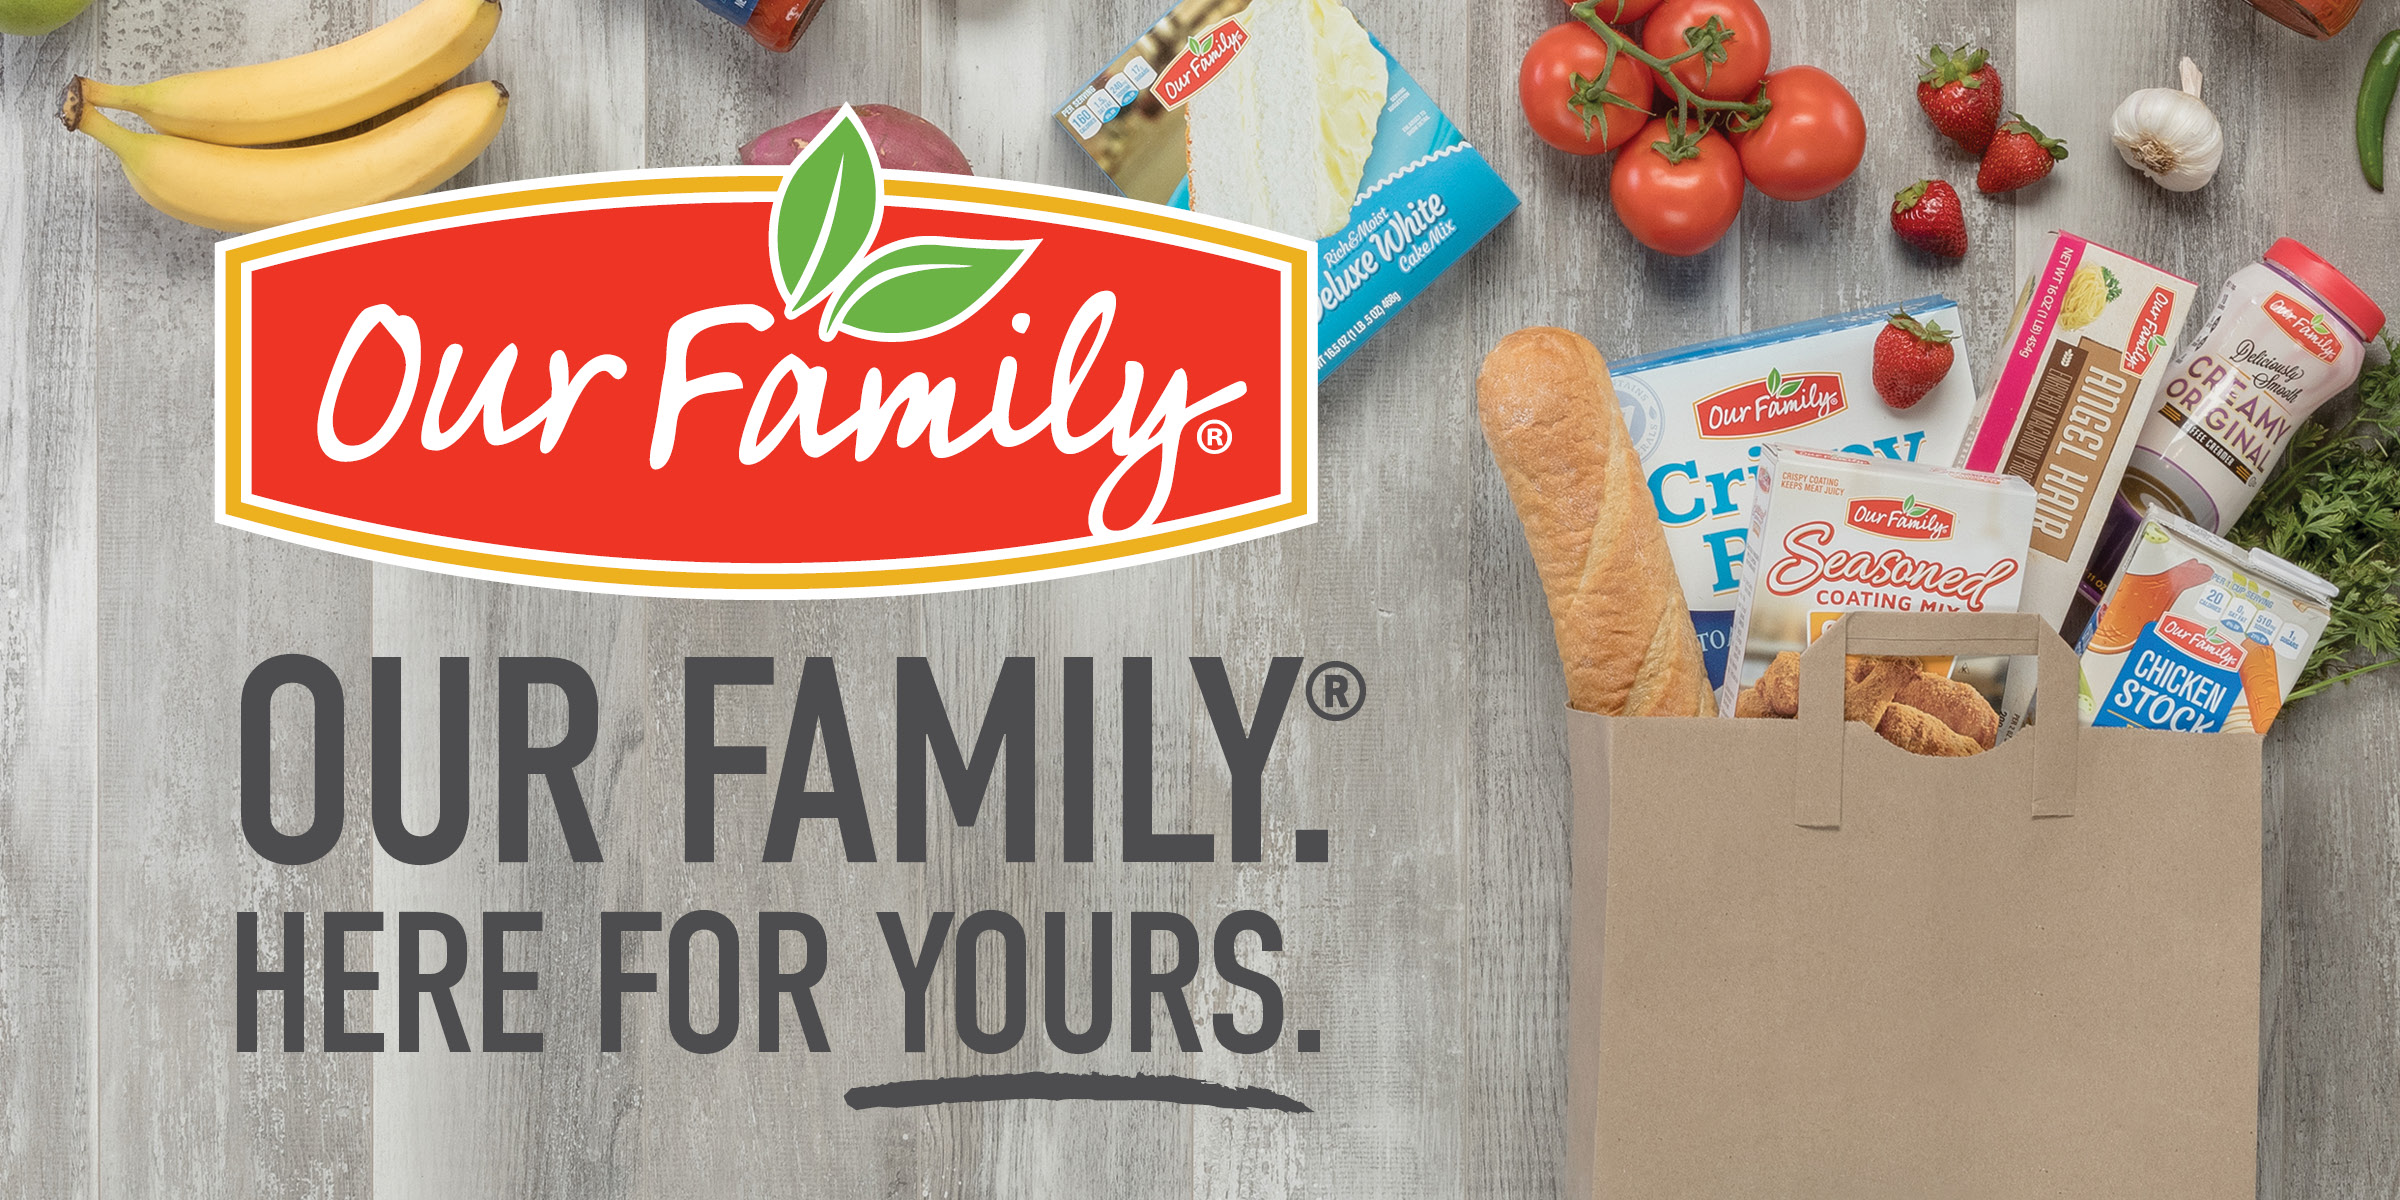 Our Family, quality since 1904